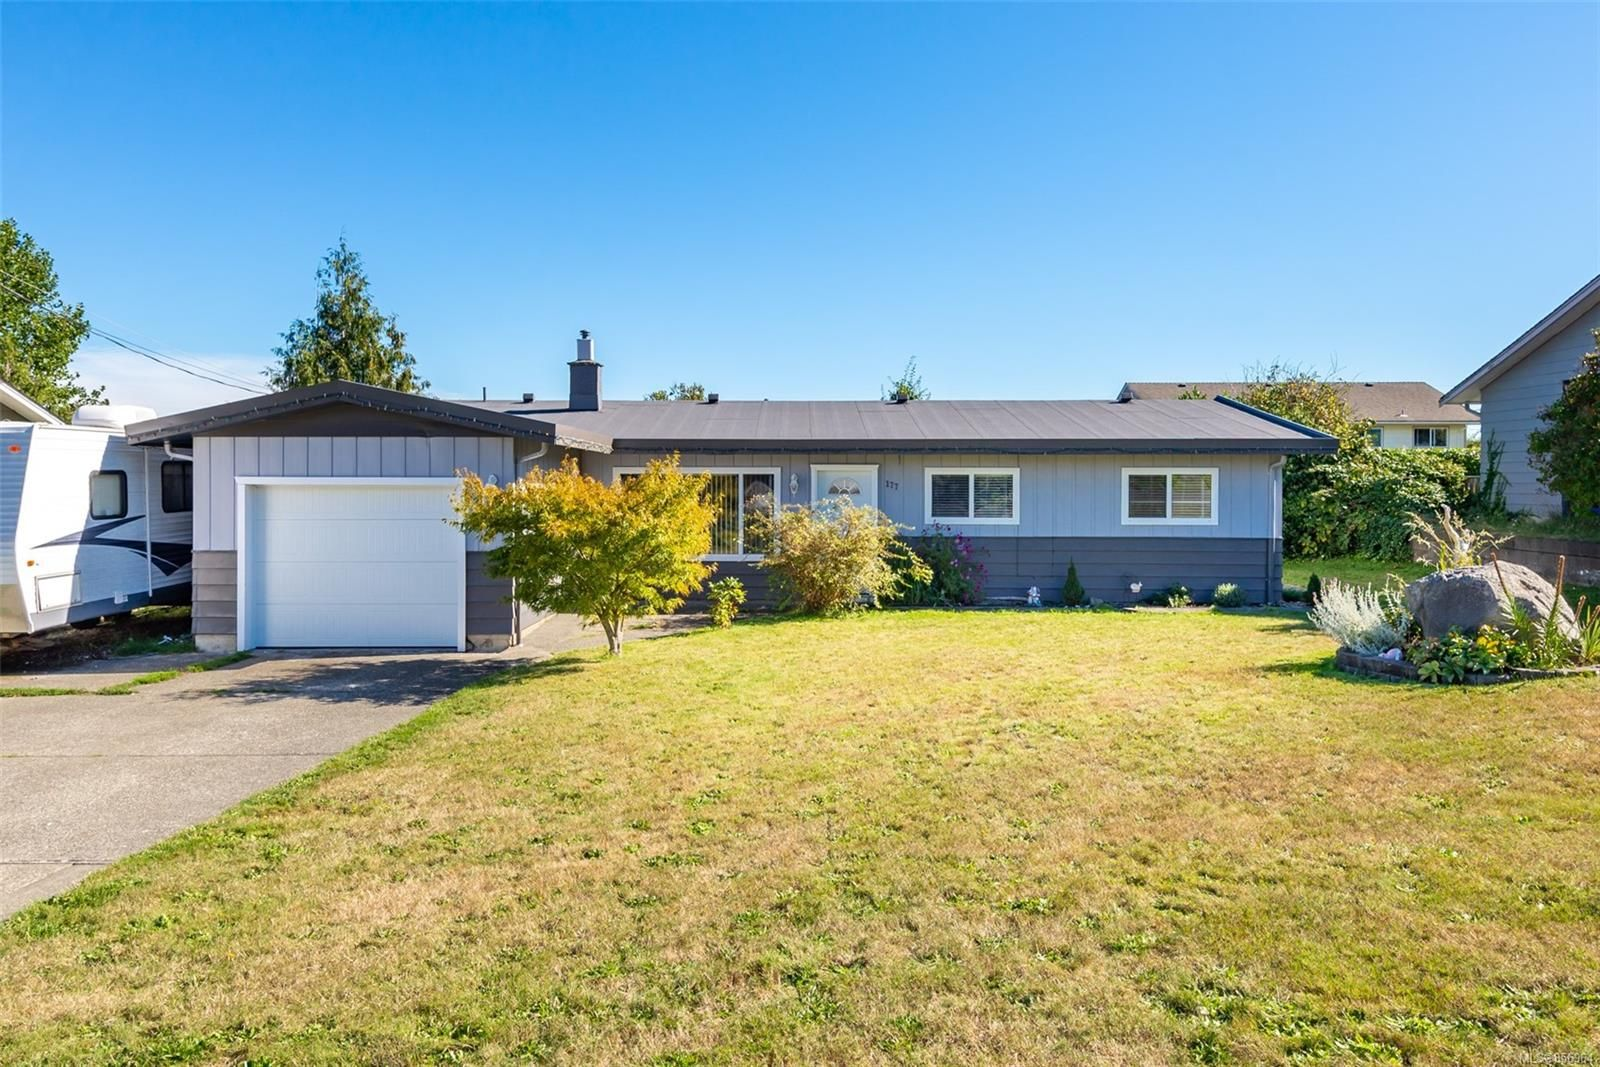 Main Photo: 177 S Birch St in : CR Campbell River Central House for sale (Campbell River)  : MLS®# 856964